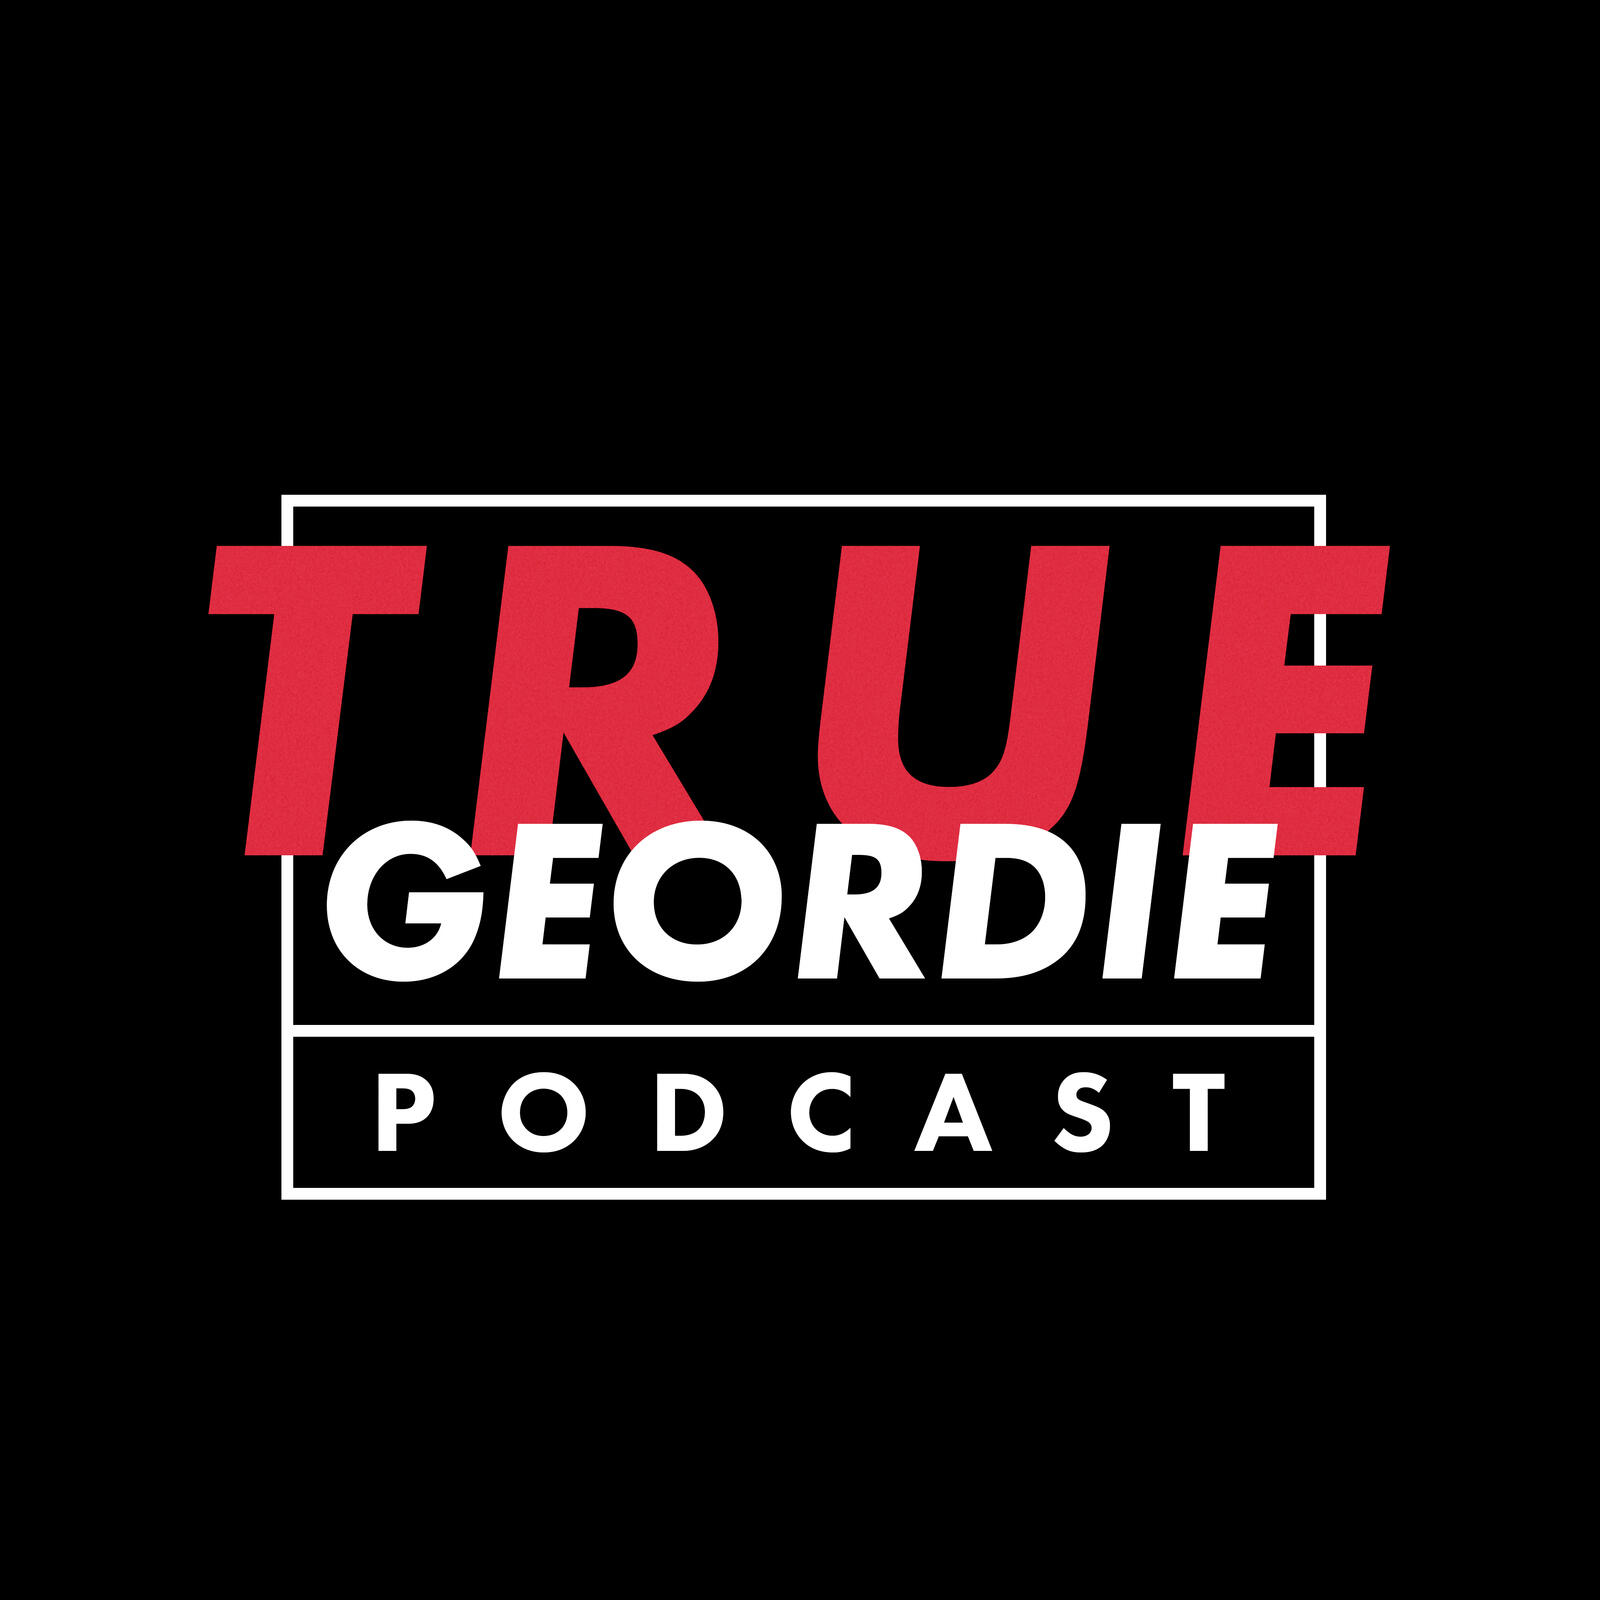 108: #108 IAN WRIGHT | True Geordie Podcast